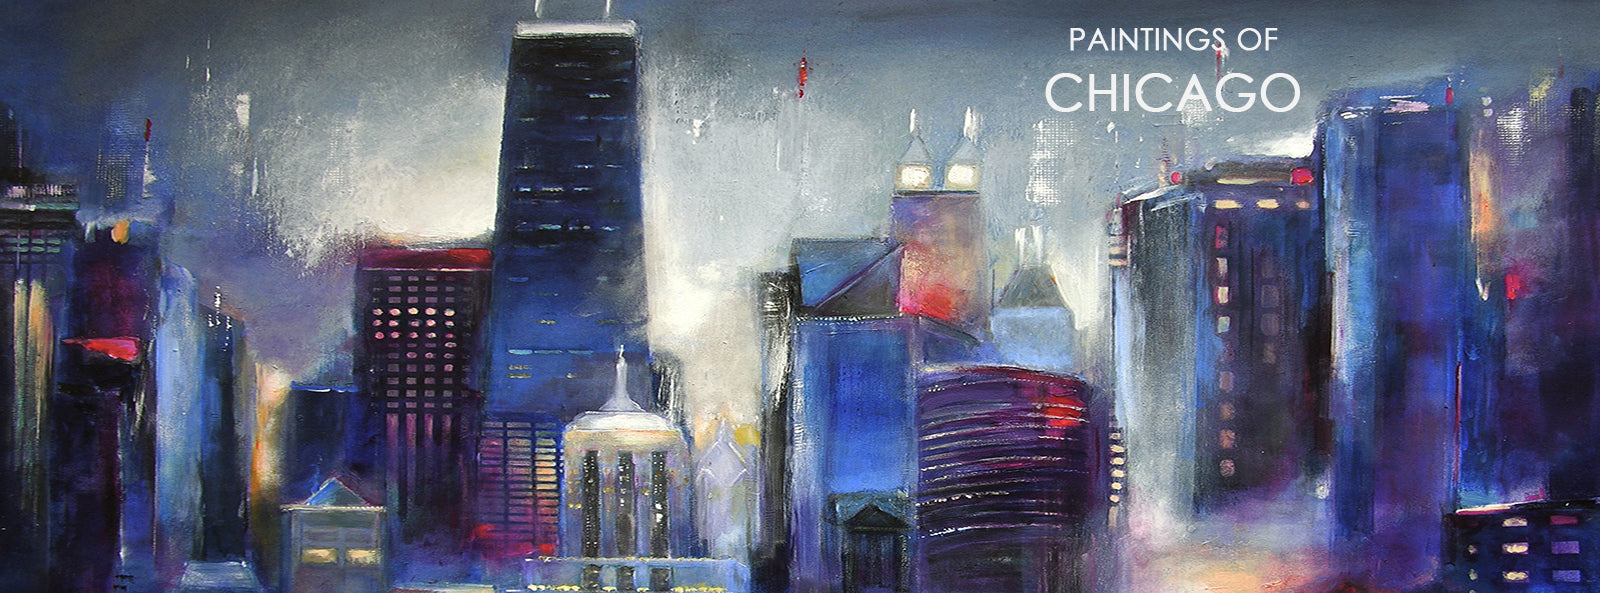 Original Chicago paintings, paintings of the Chicago skyline on canvas, Chicago paintings for sale